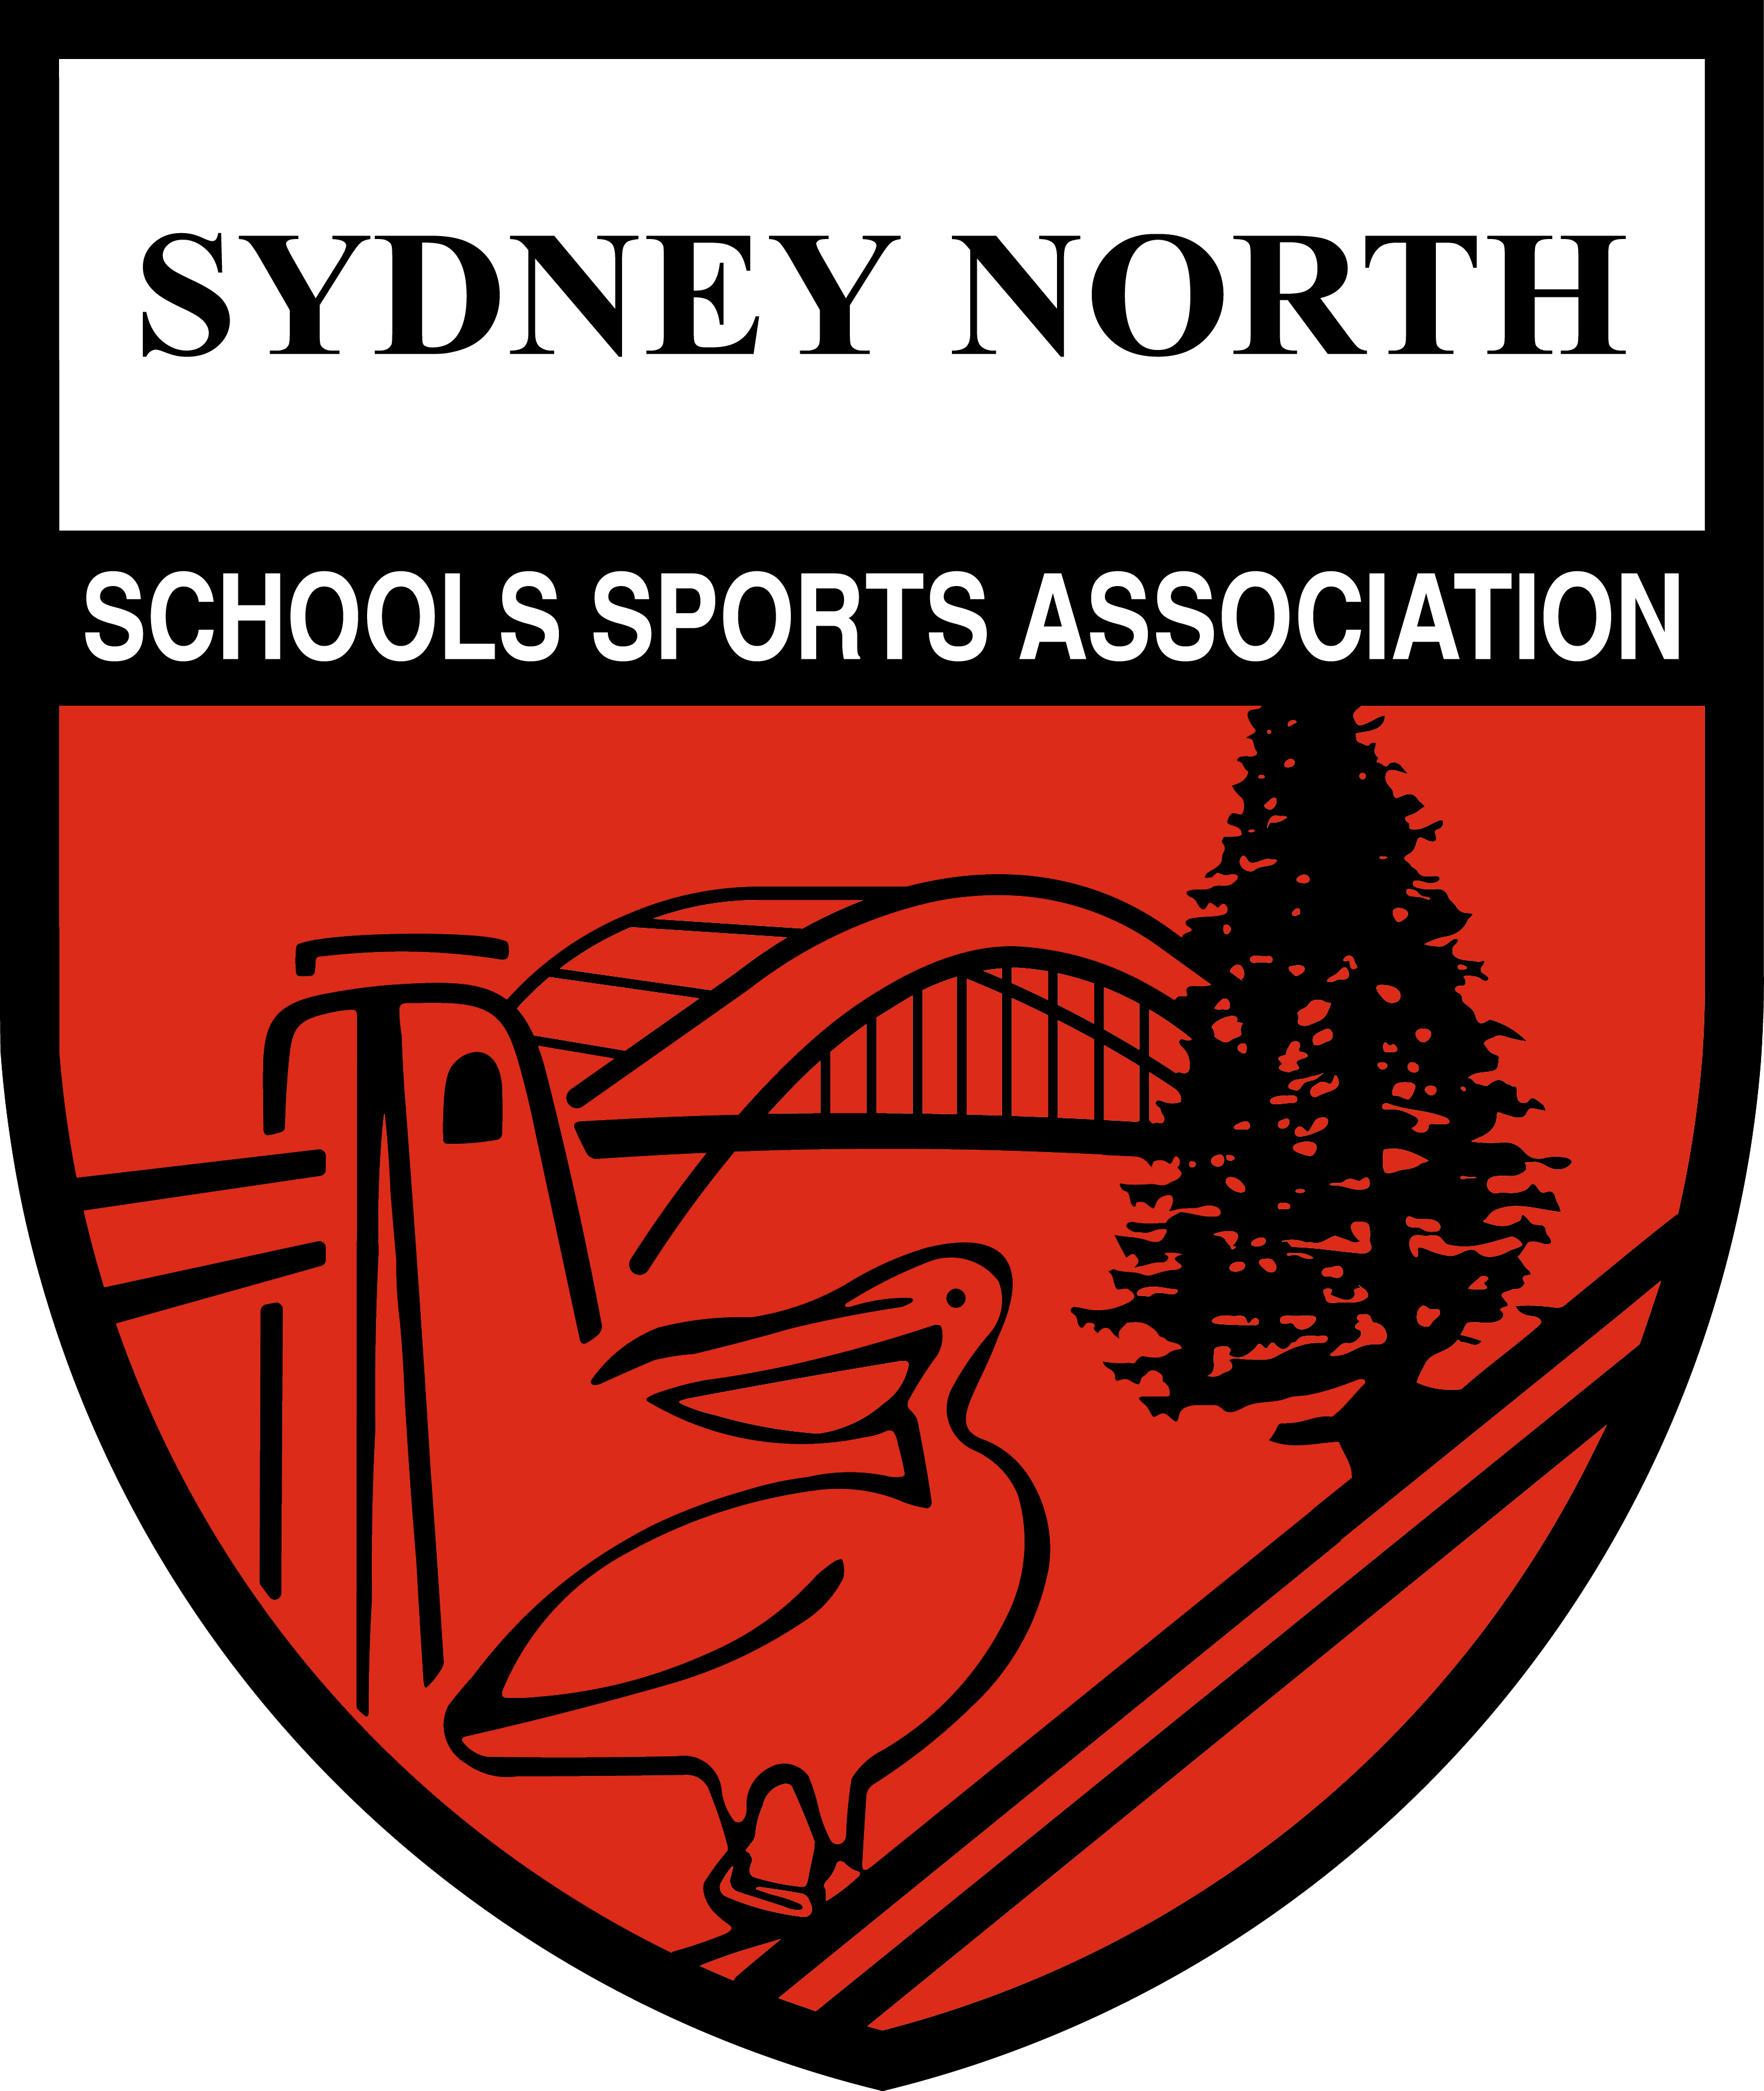 Sydney North Schools Sports Association logo